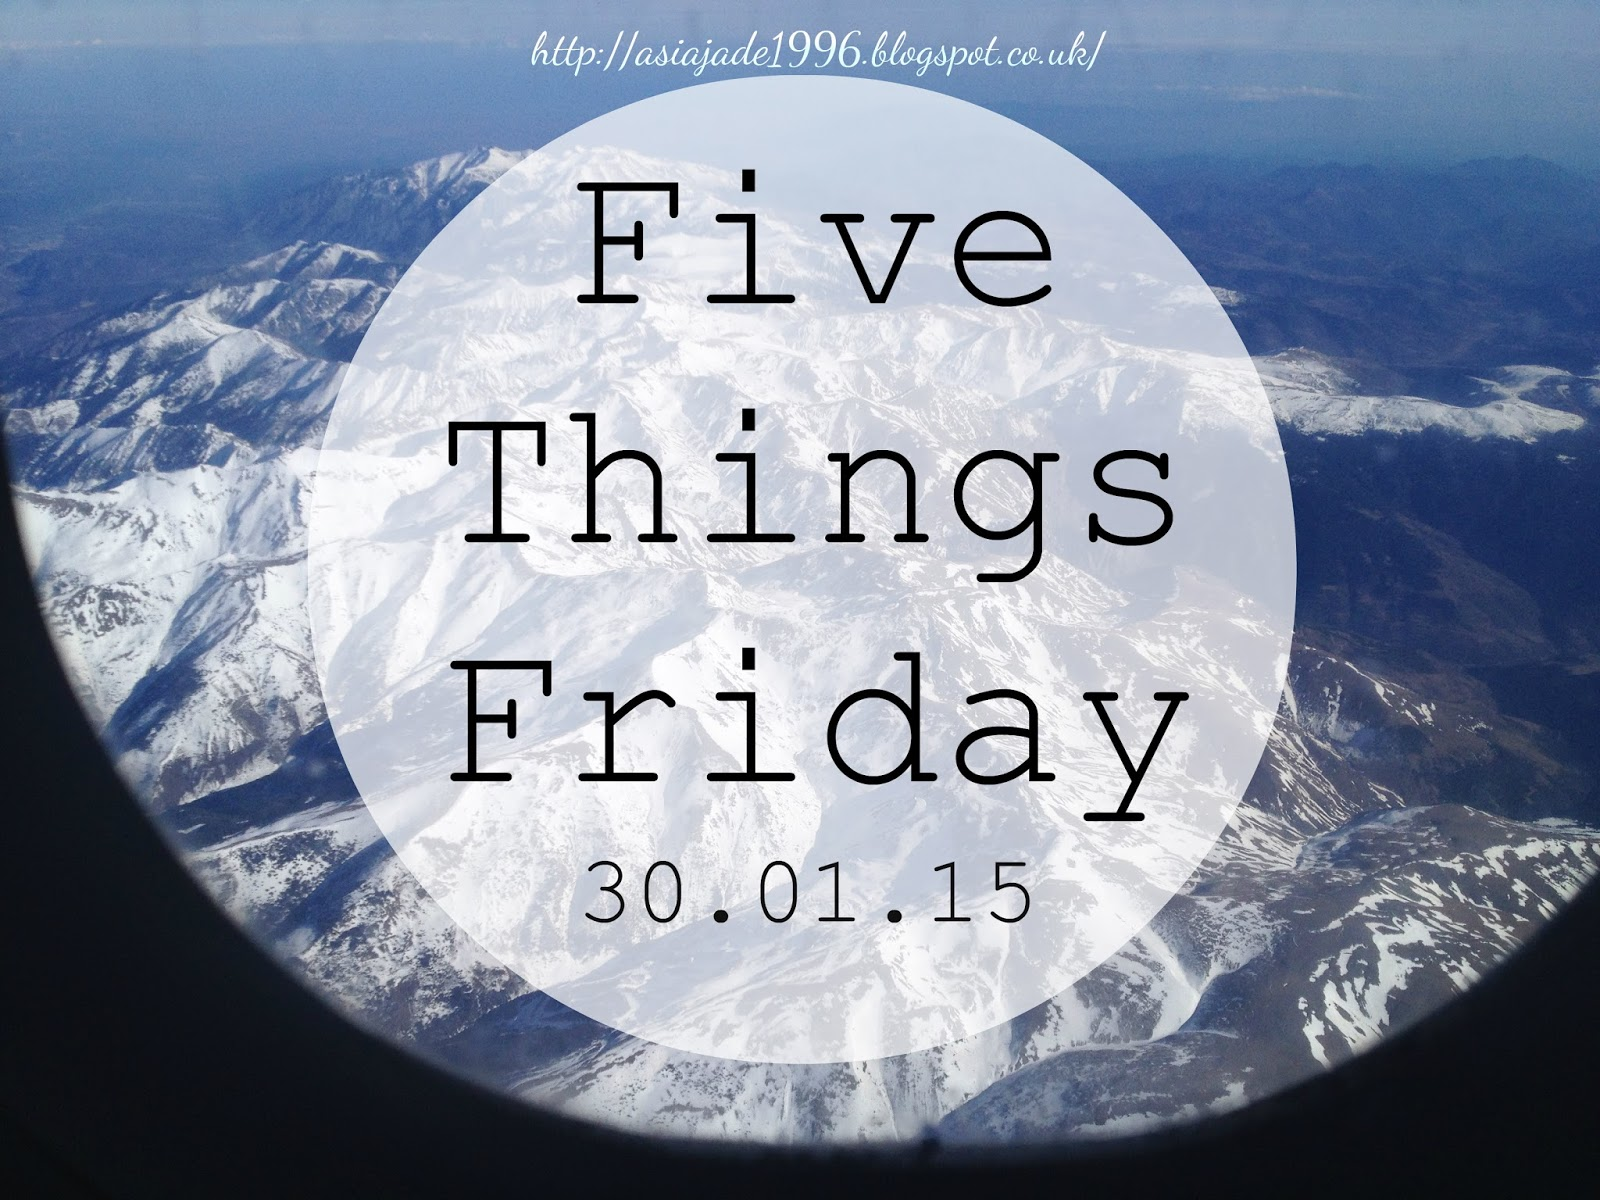 Five Things Friday 30.01.15